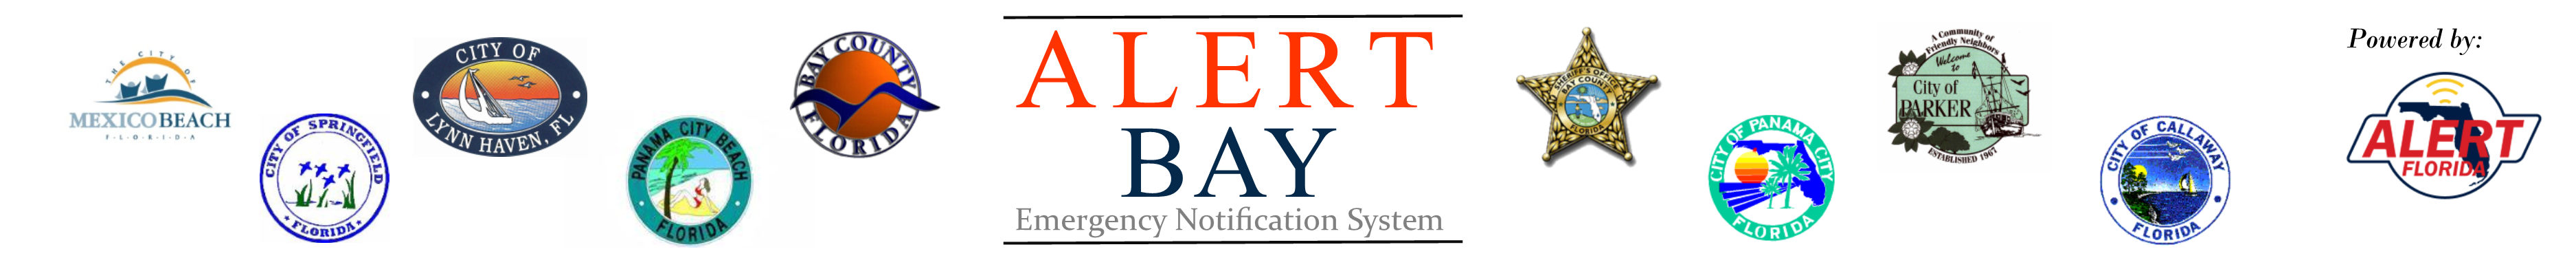 Alert Bay - Emergency Notification System